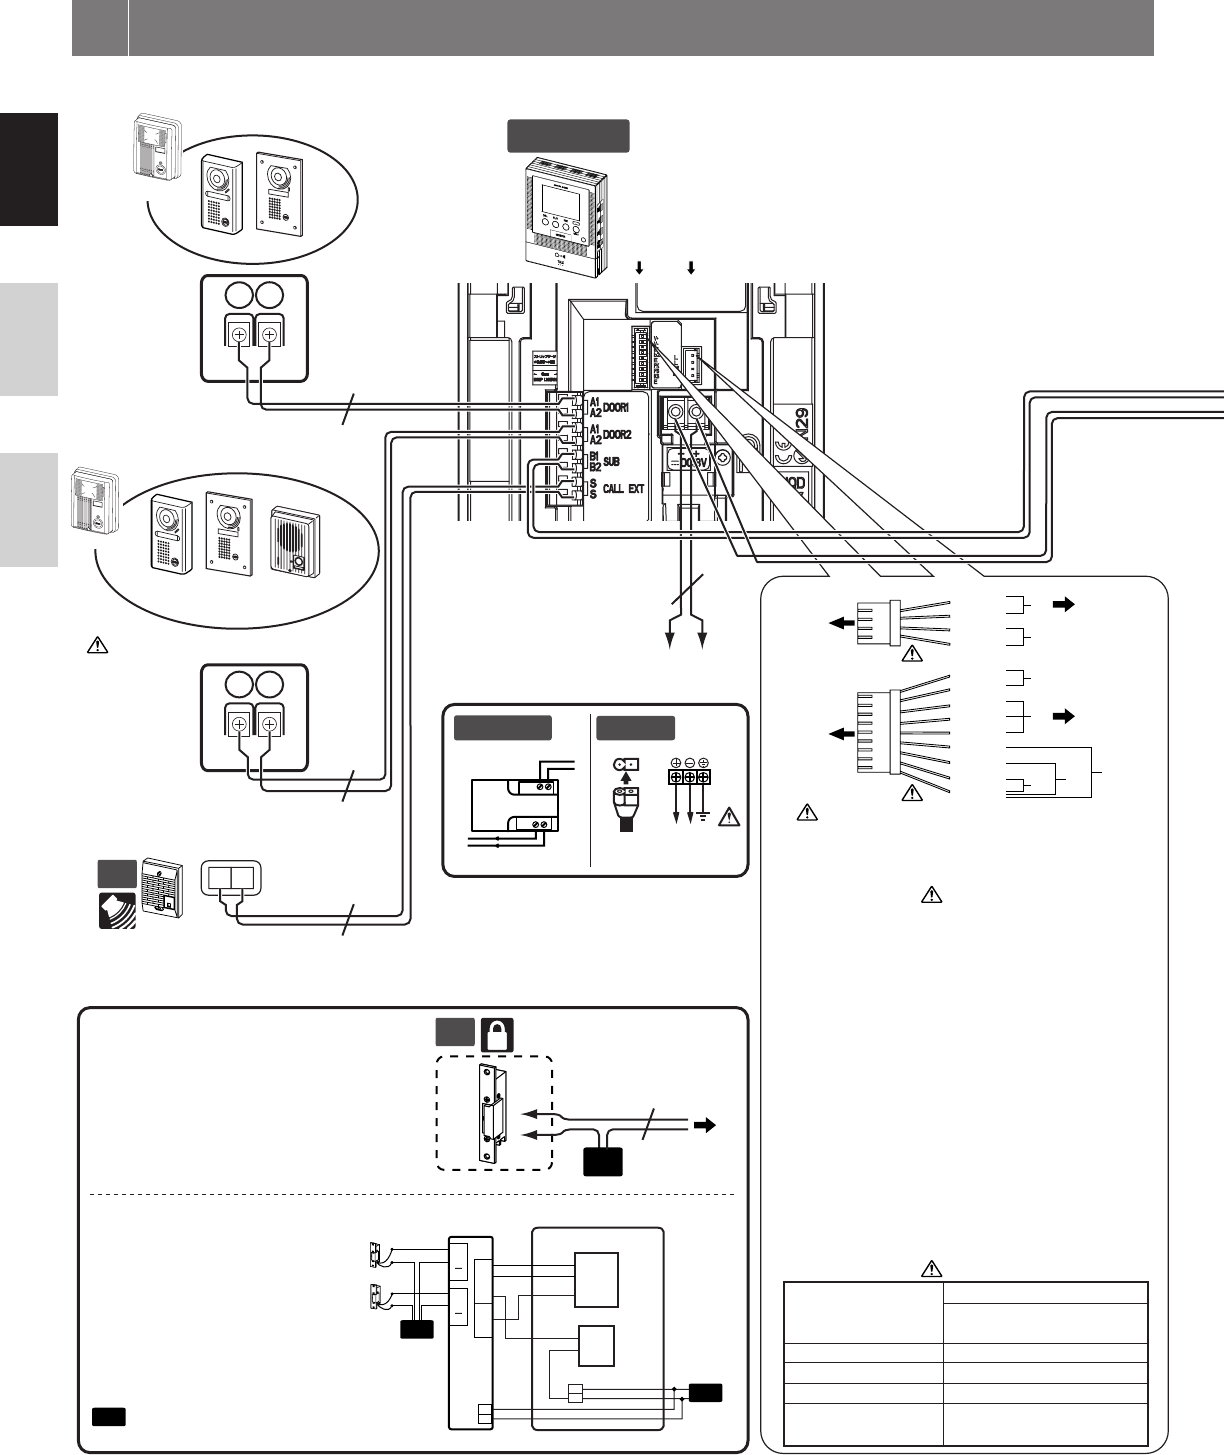 bfb05761 b44c 422c 9473 8156de703524 bg4 page 4 of aiphone intercom system jf 2med user guide aiphone wiring diagram at virtualis.co